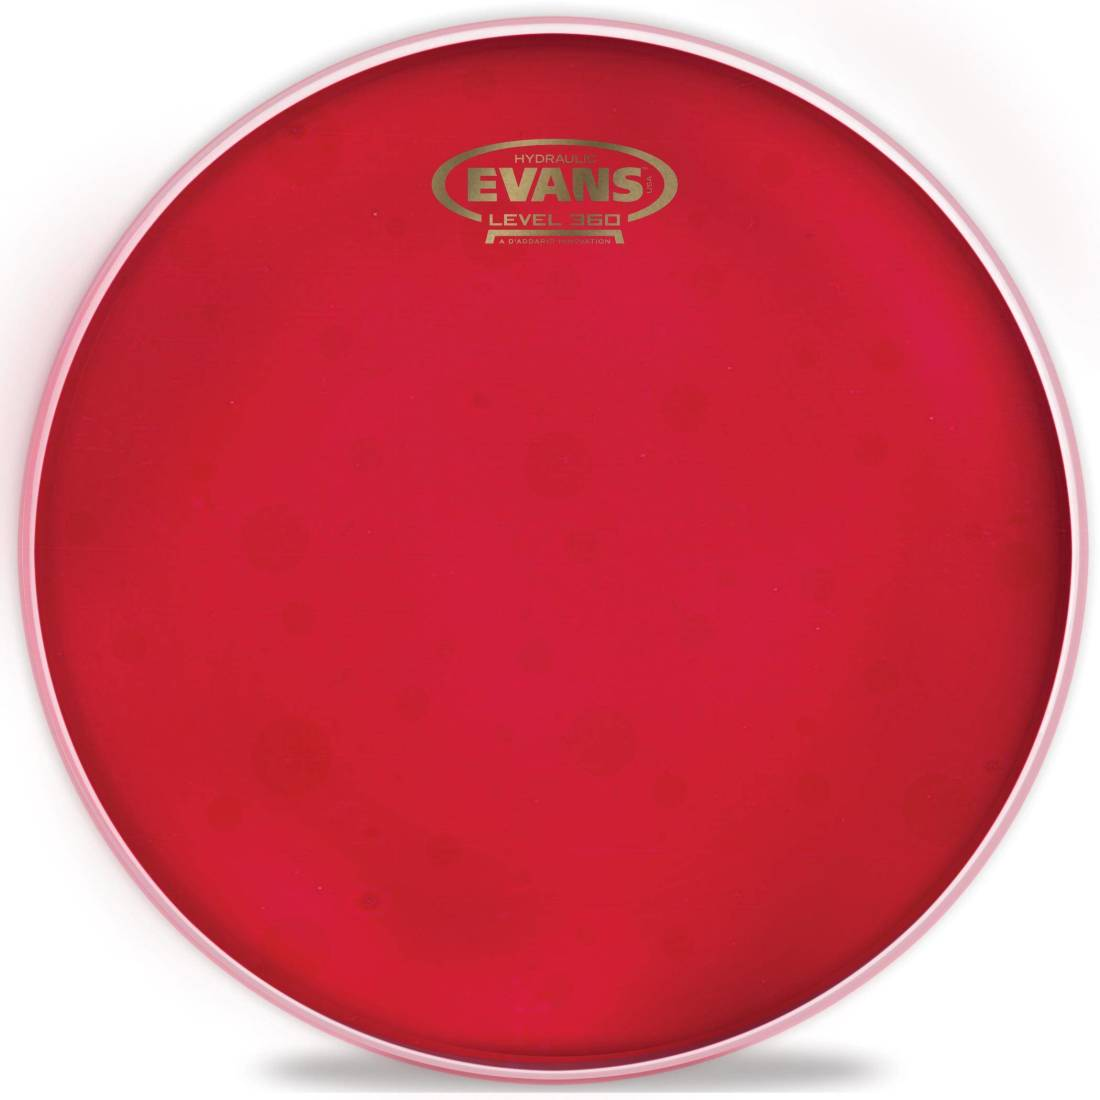 evans hydraulic red drum head 12 inch long mcquade musical instruments. Black Bedroom Furniture Sets. Home Design Ideas